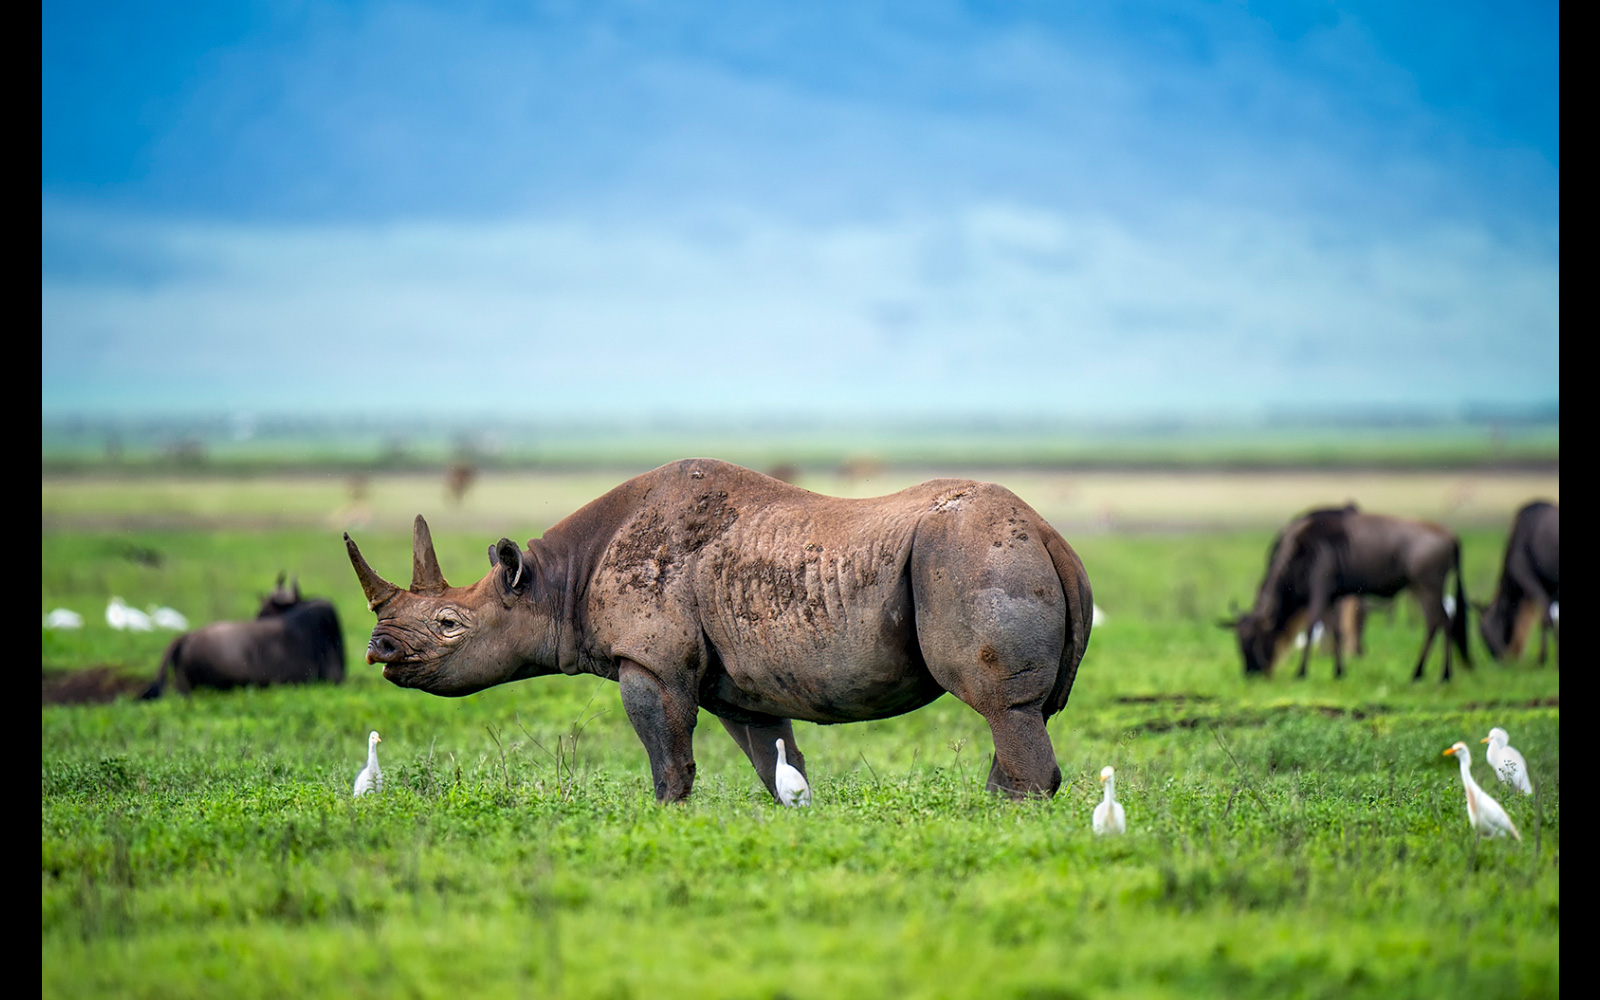 A black rhino in Tanzania © Licinia Machado